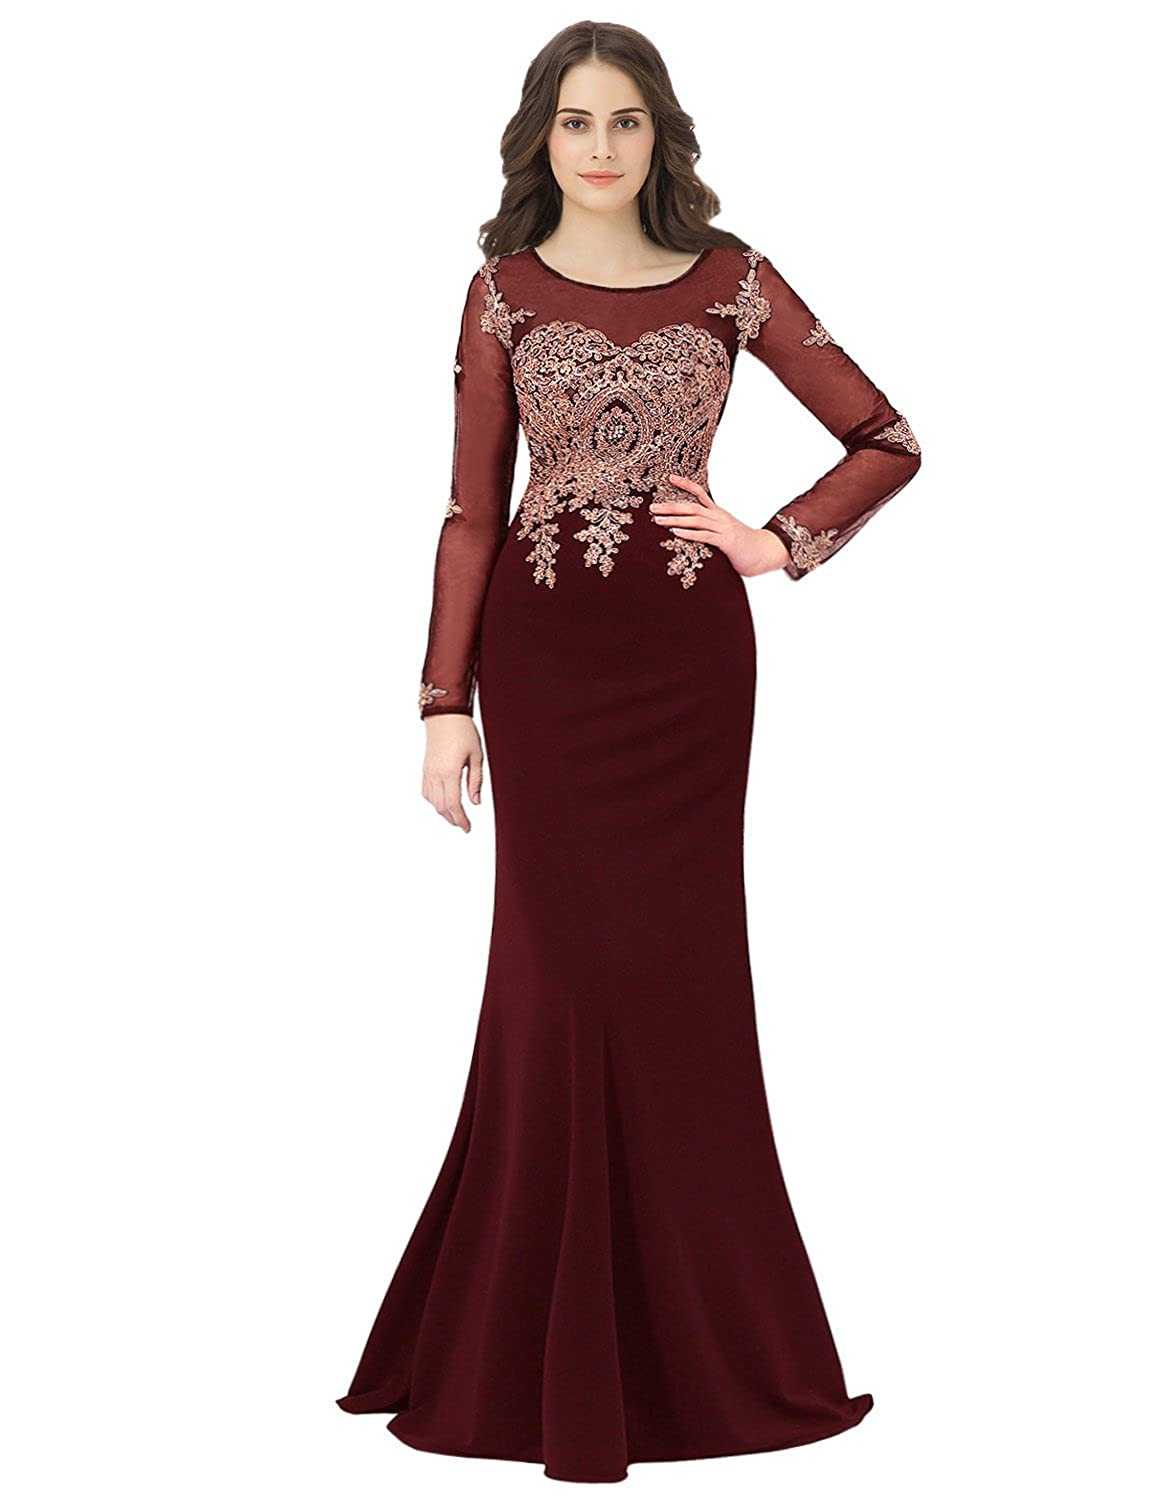 098b1f16 anmor Women's Beaded Sequin Prom Dress Long 2019 Formal Evening Party Ball  Gowns at Amazon Women's Clothing store: